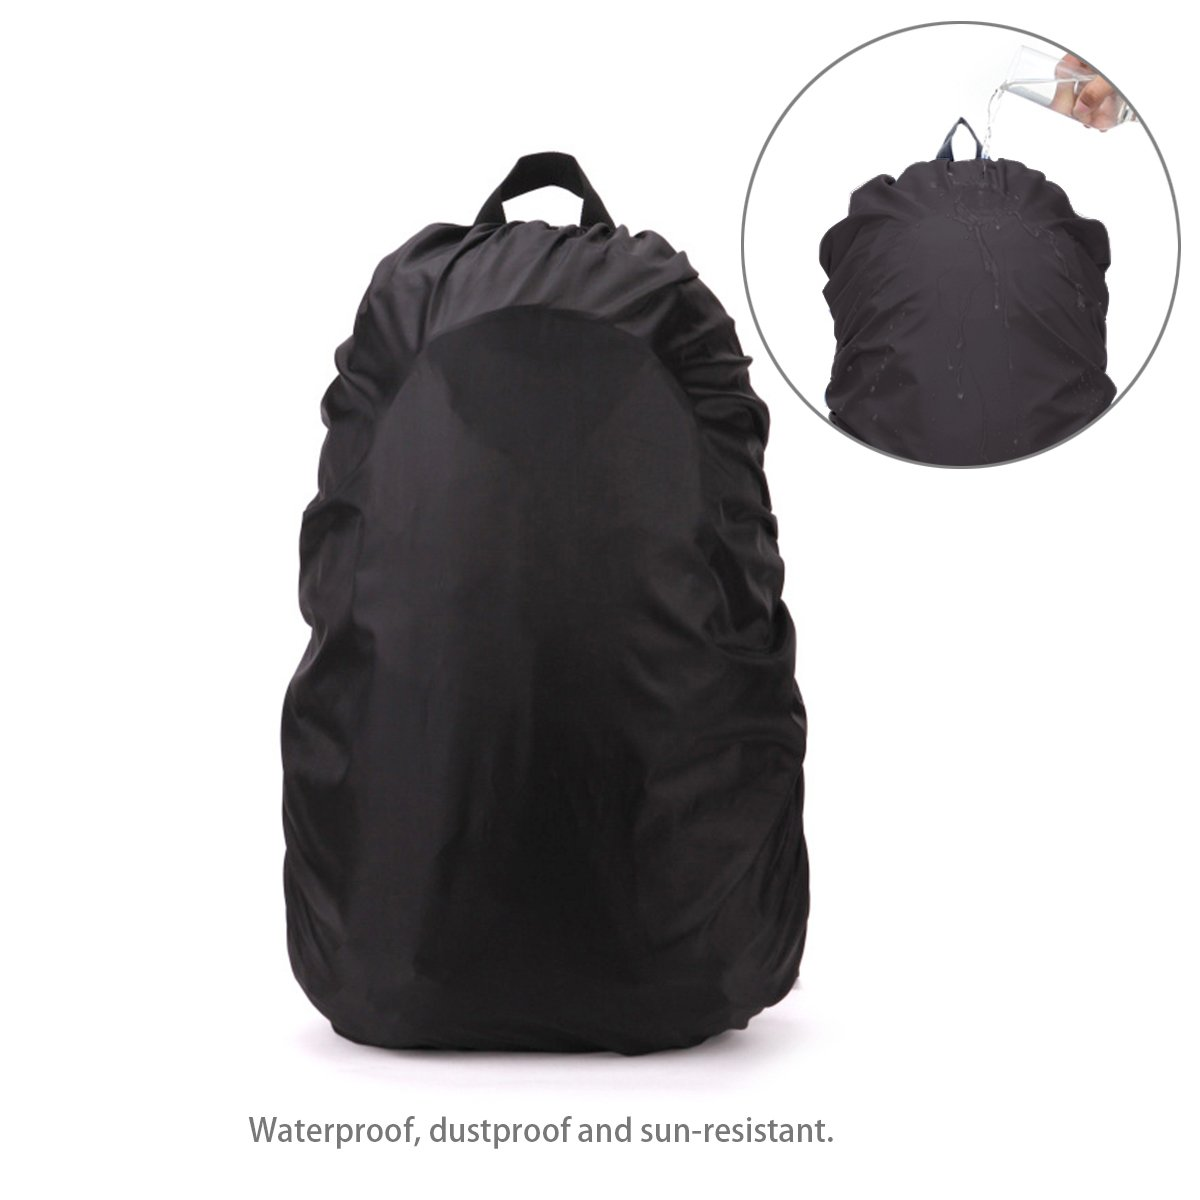 Pixnor Waterproof Rain Cover Backpack Cover Rain Cover Rain Cover for Camping Hiking (Black)